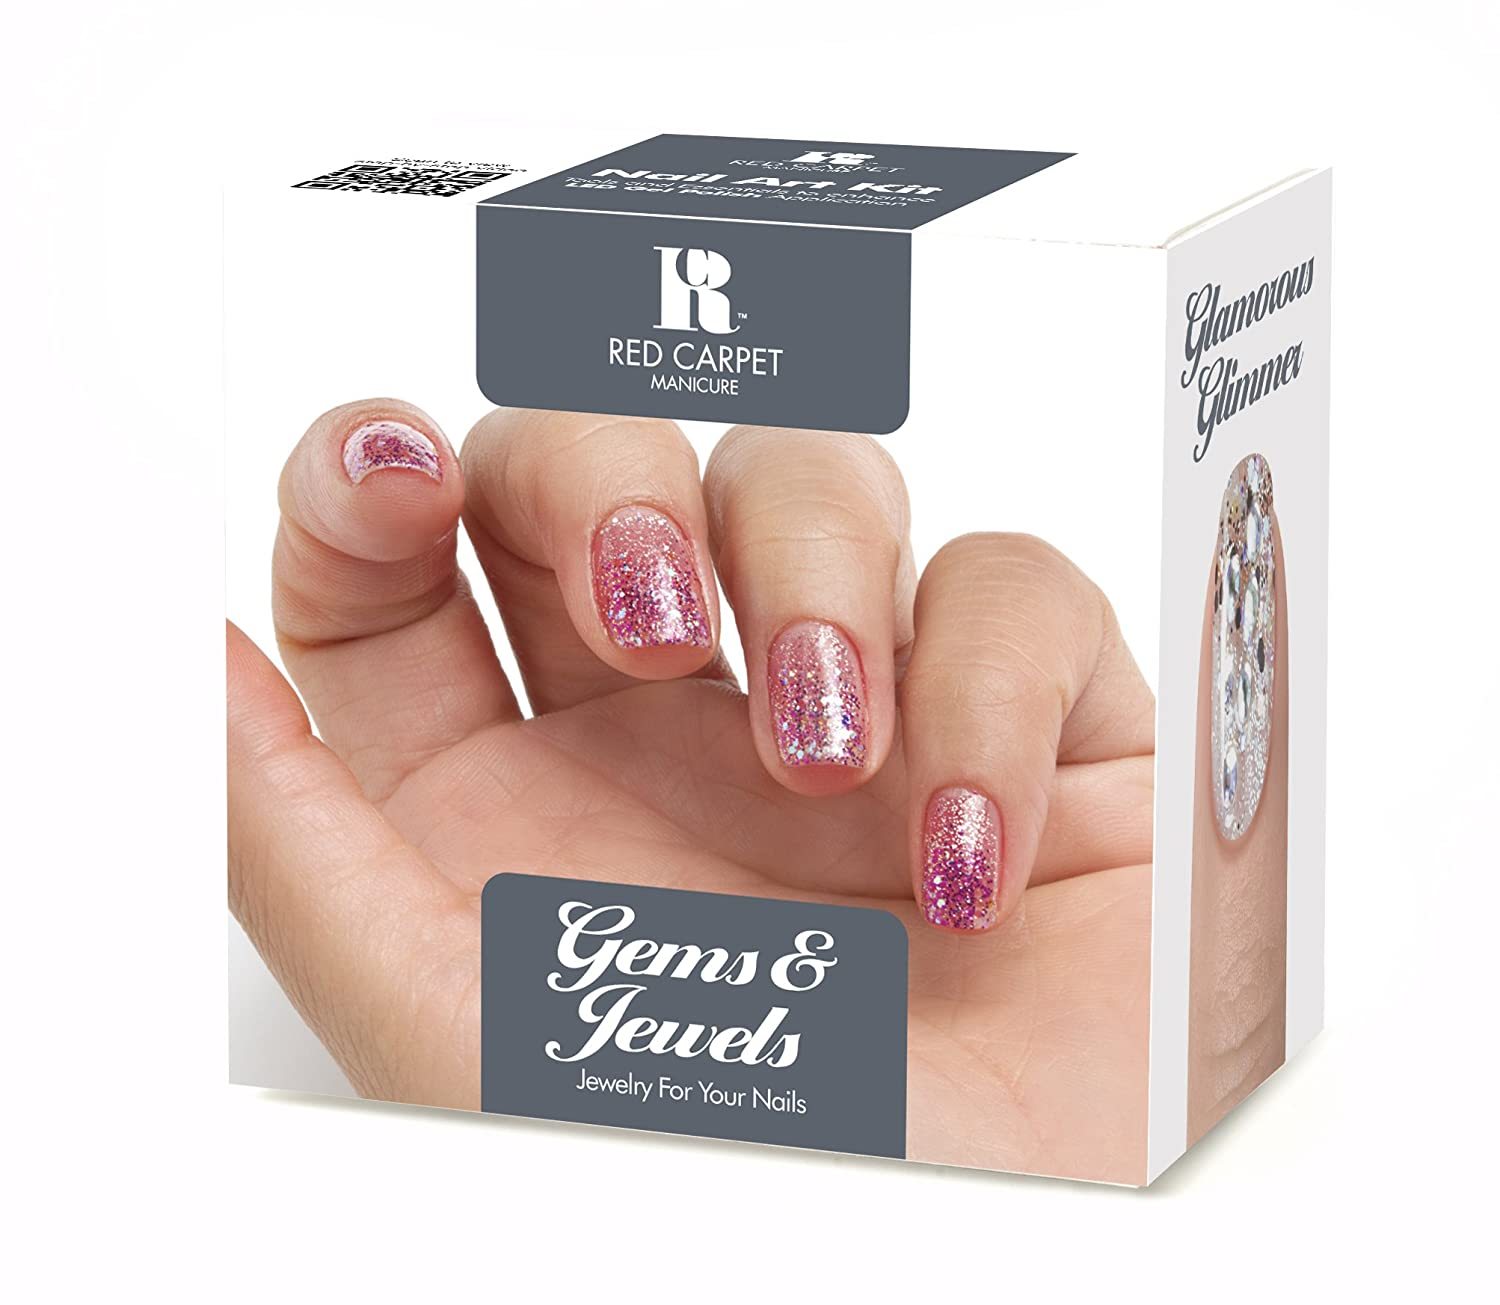 Amazon.com : Red Carpet Manicure Gems and Jewels : Manicure Kits ...